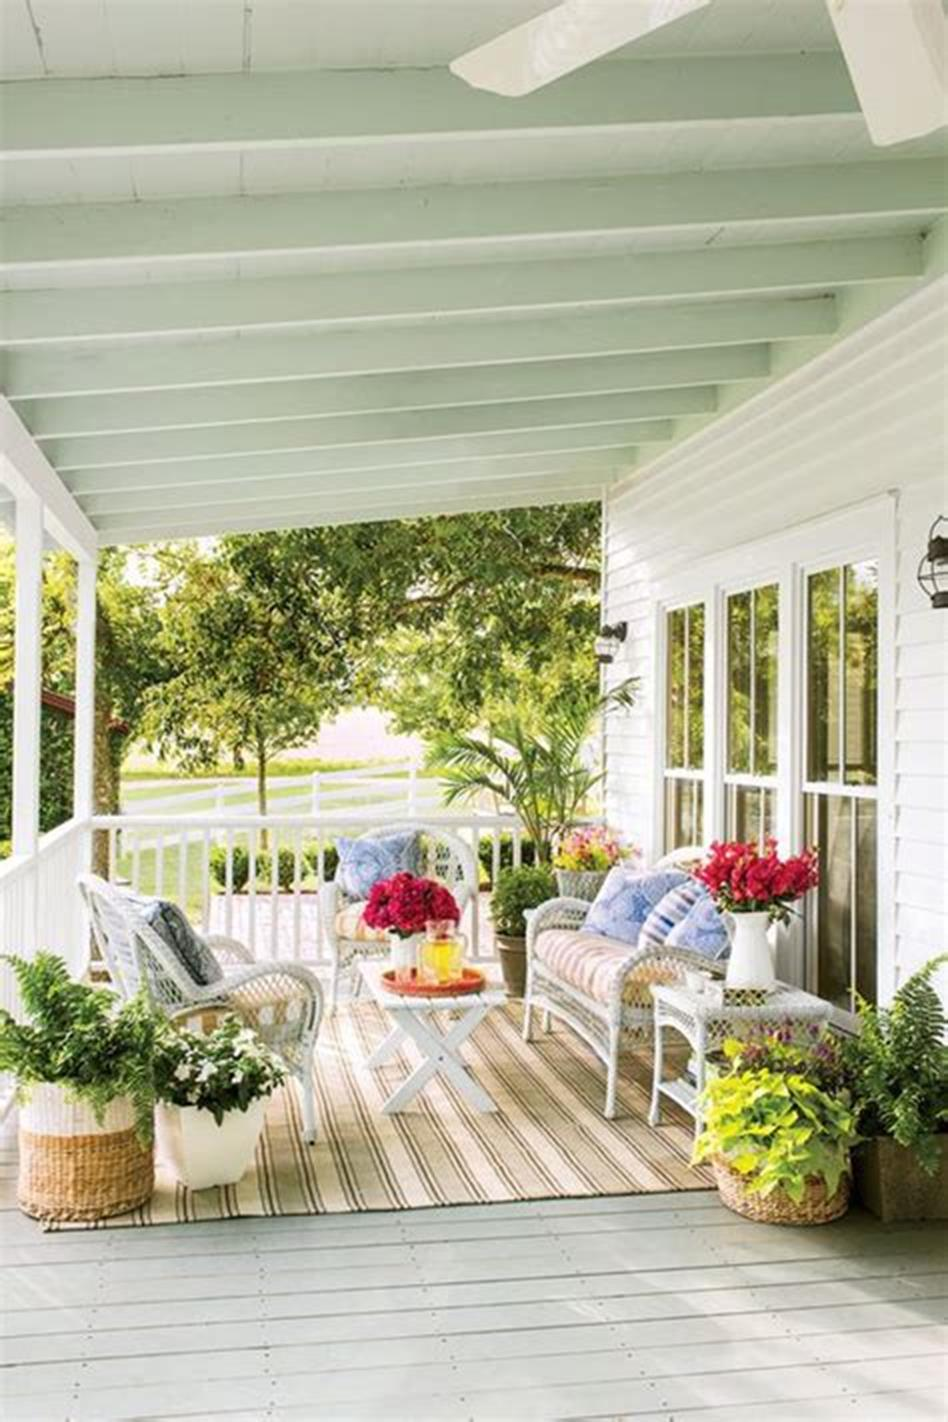 40 Best Screened Porch Design and Decorating Ideas On Budget 23